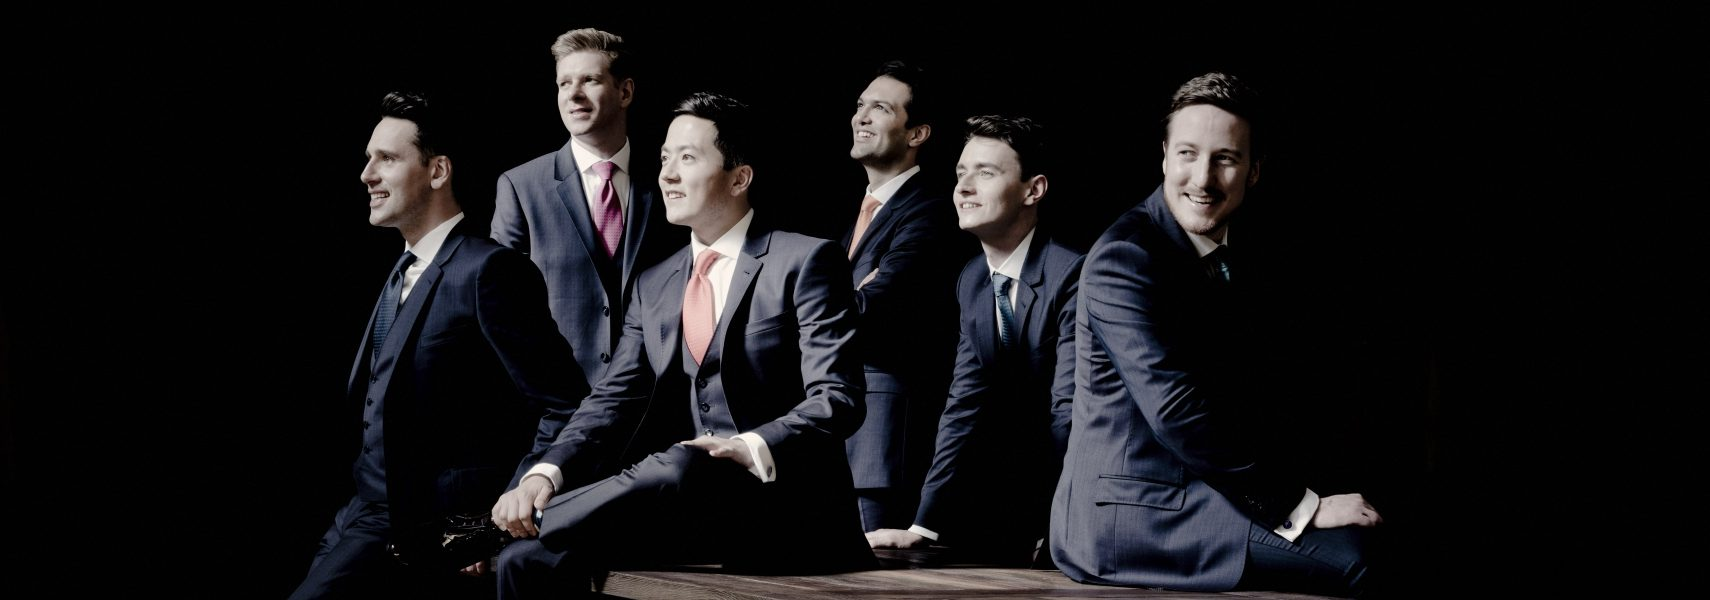 The King's Singers, Bandfoto